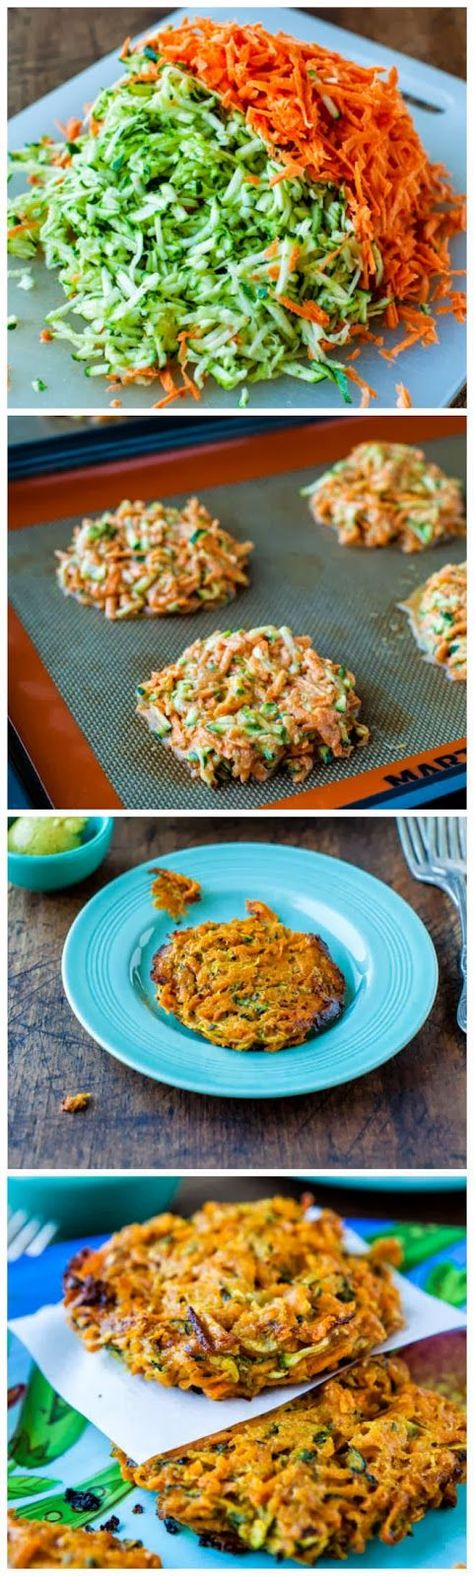 Baked Chipotle Sweet Potato and Zucchini Fritters (vegan, gluten-free) & Homemade Spicy Honey Mustard - You don't have to fry these healthy fritters in gobs of oil. They're baked, satisfying, and a great way to work in extra veggies!